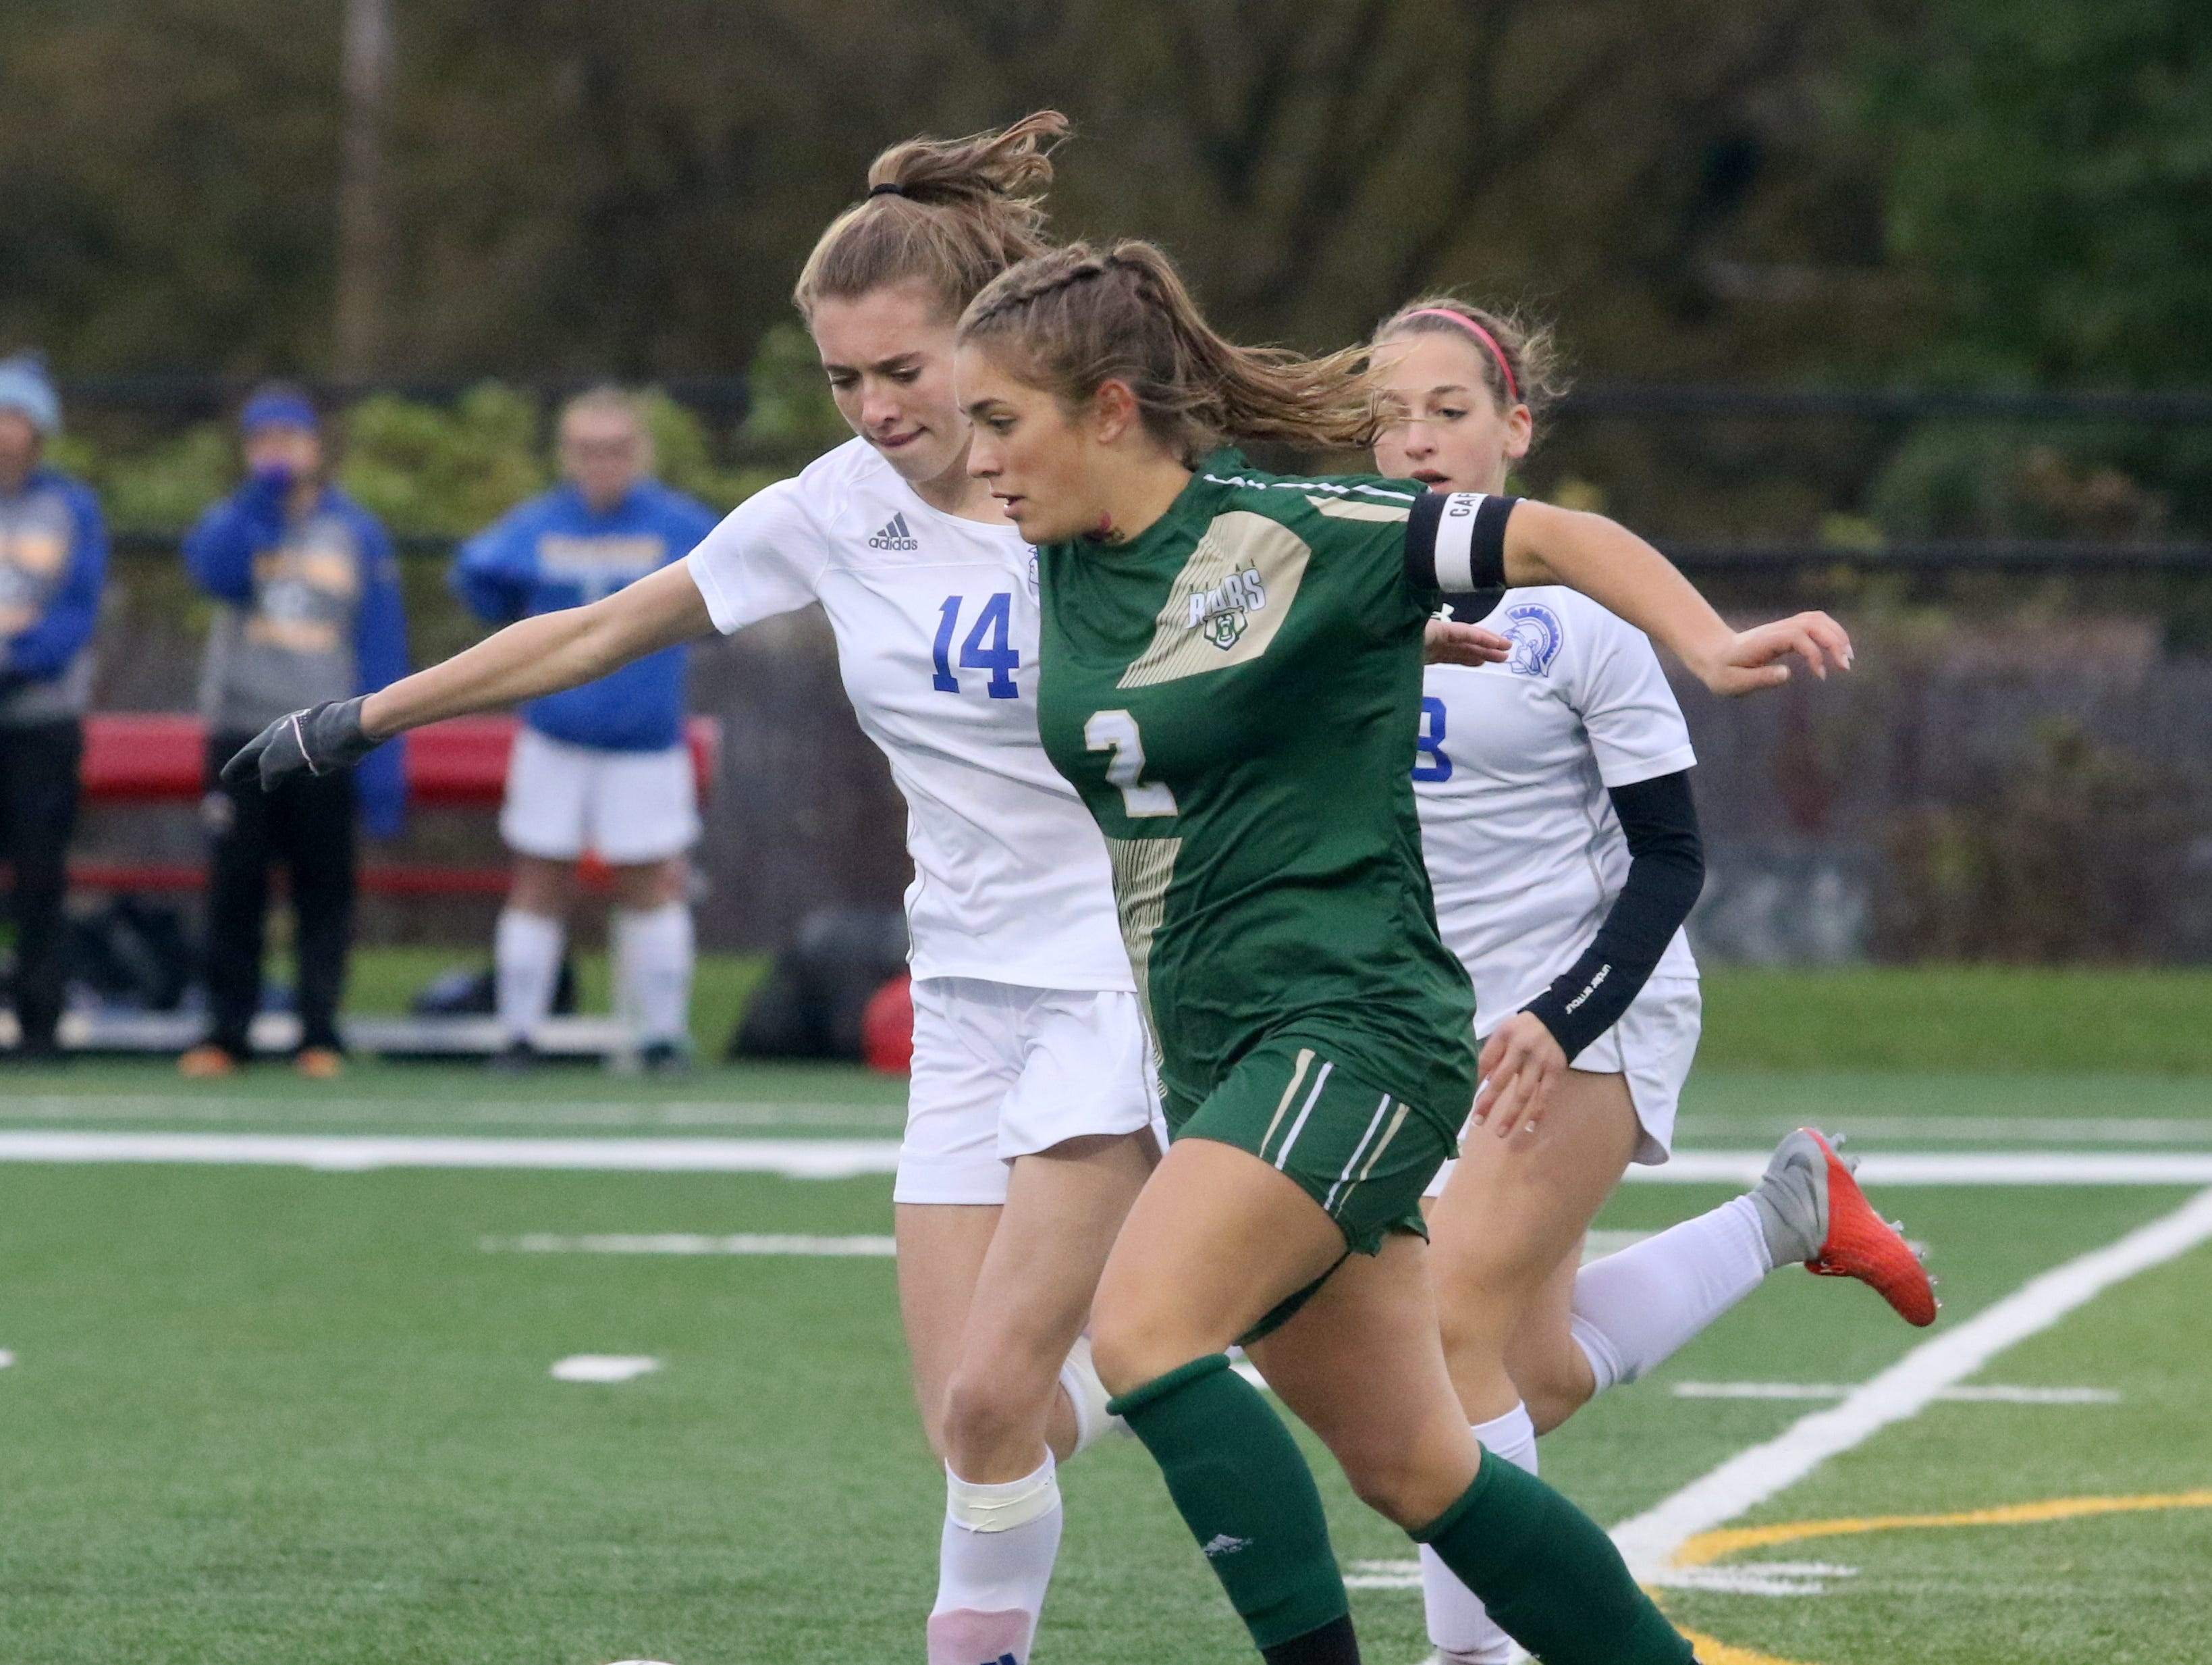 Vestal was a 7-3 winner over Maine-Endwell in the Section 4 Class A girls soccer championship game Oct. 26, 2018 at Waverly Memorial Stadium.